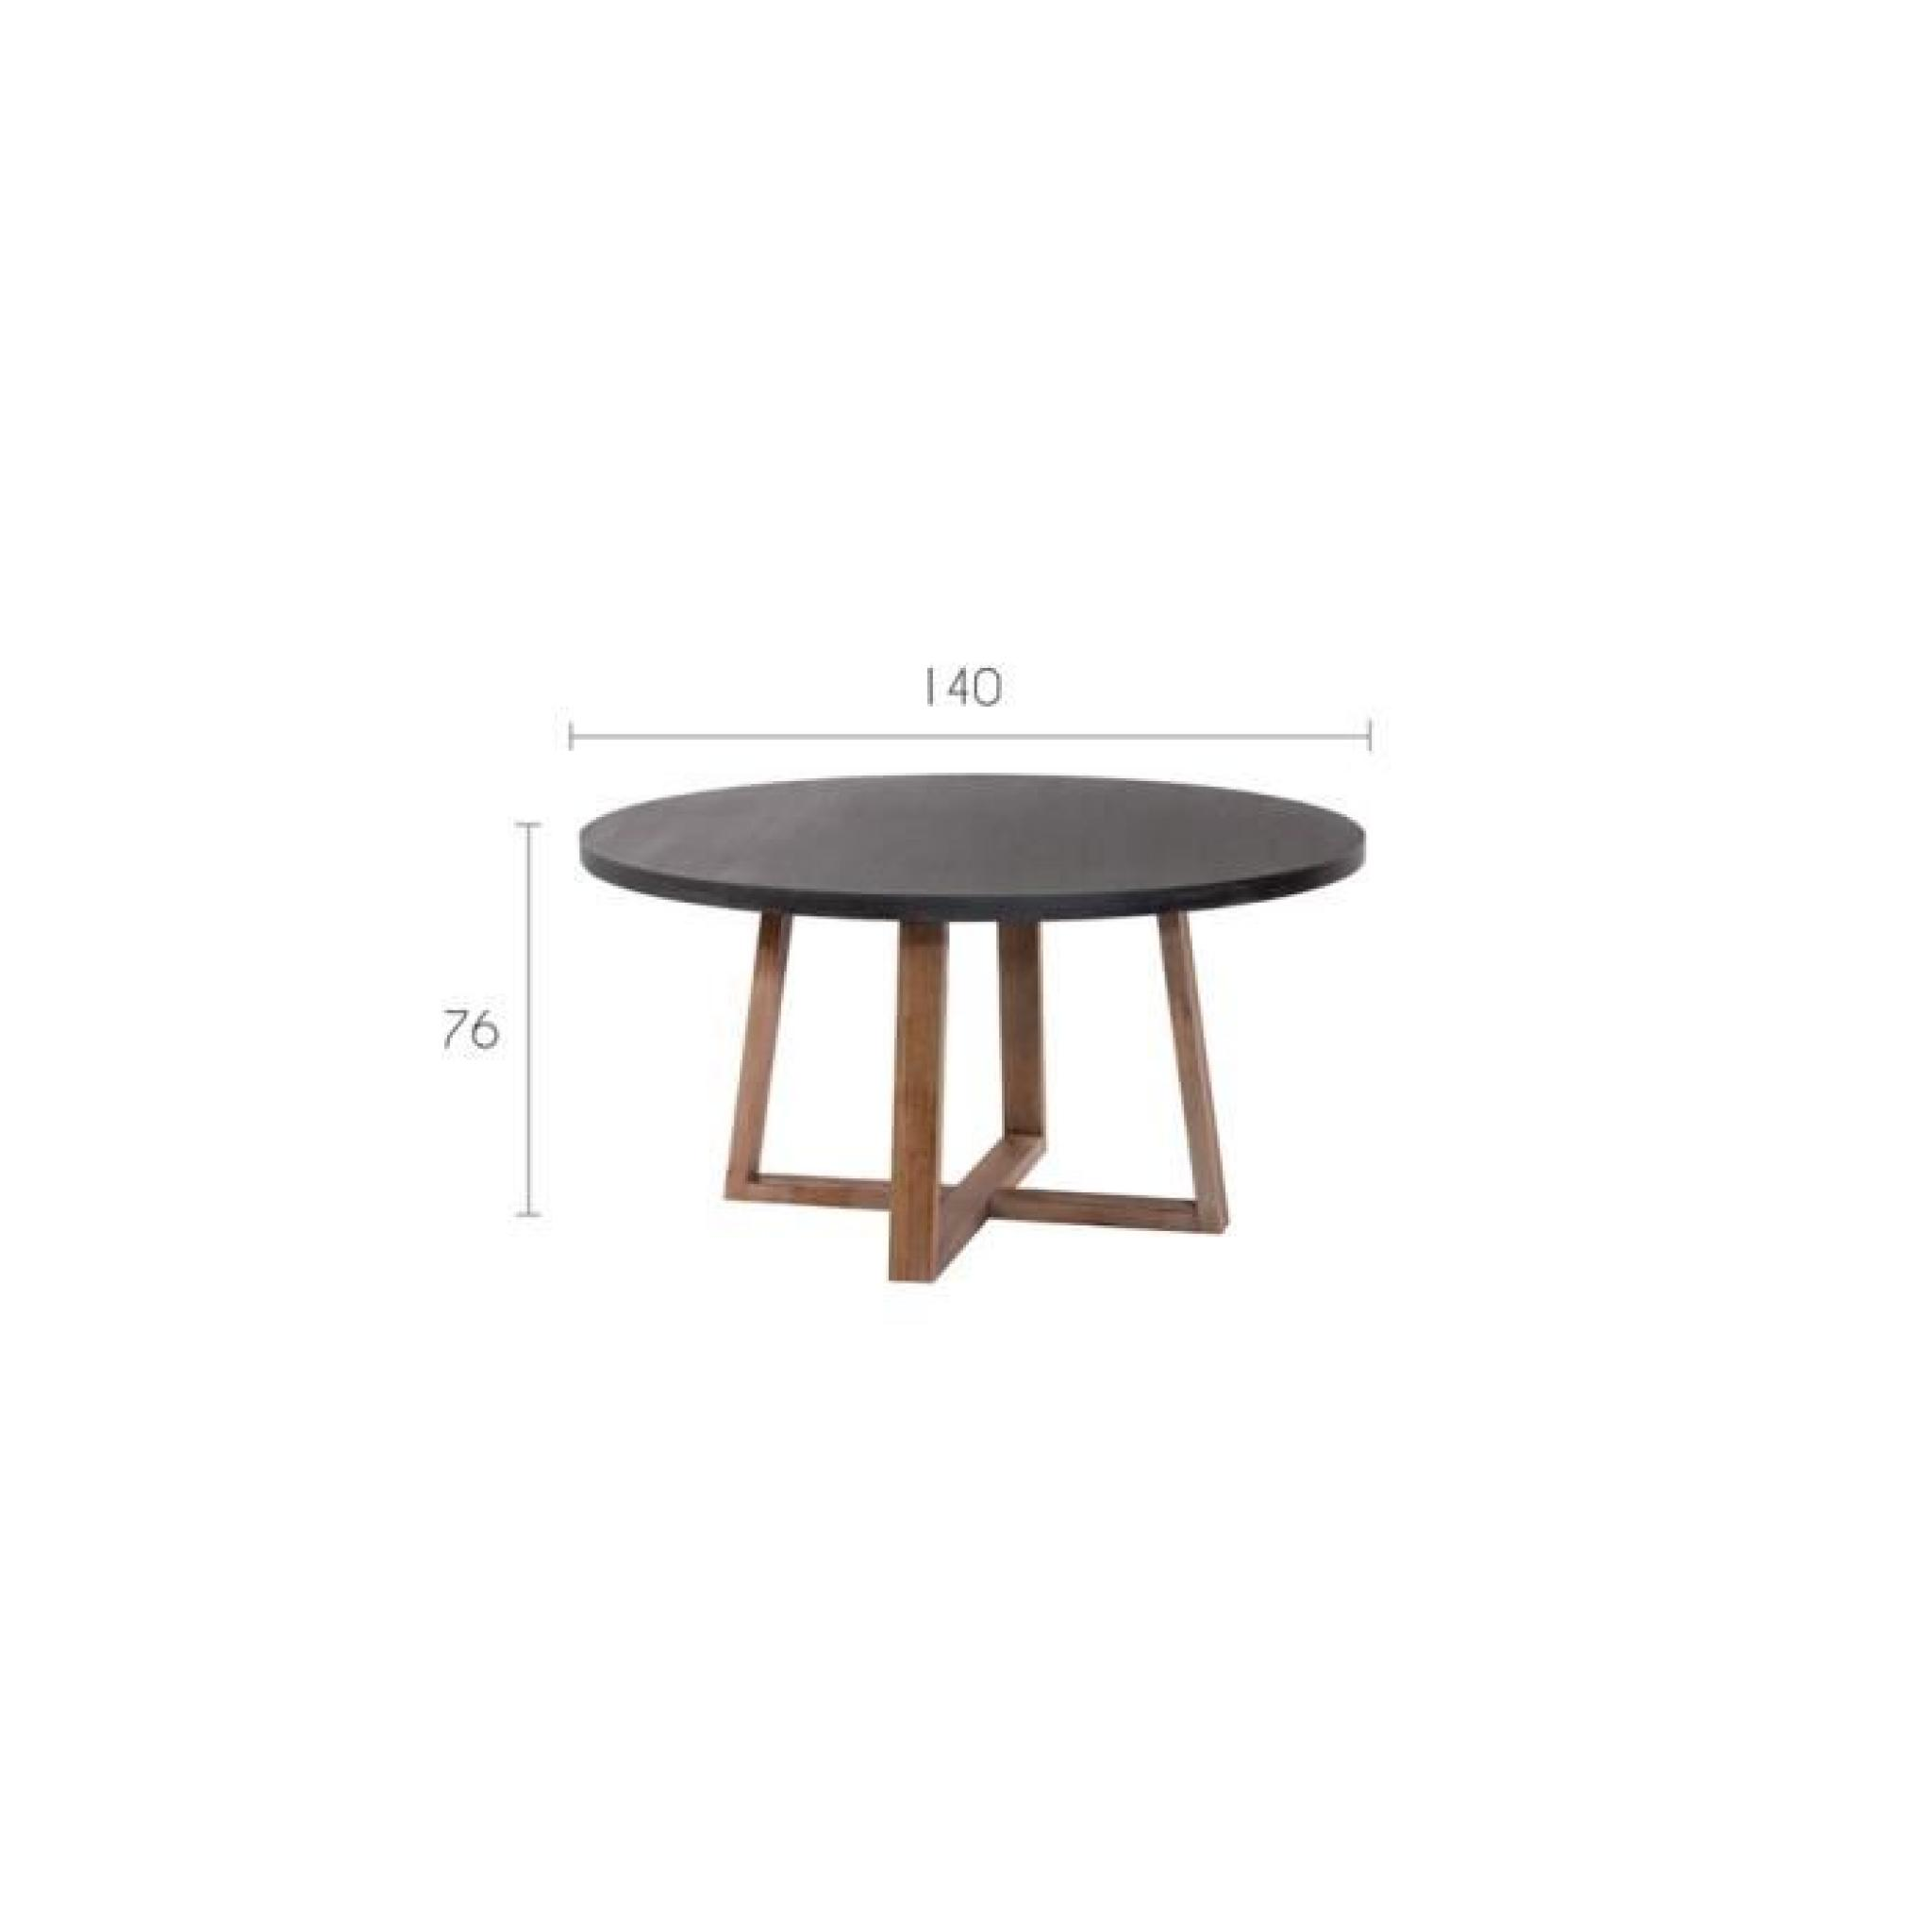 Table manger pas cher maison design - Table a manger design pas cher ...